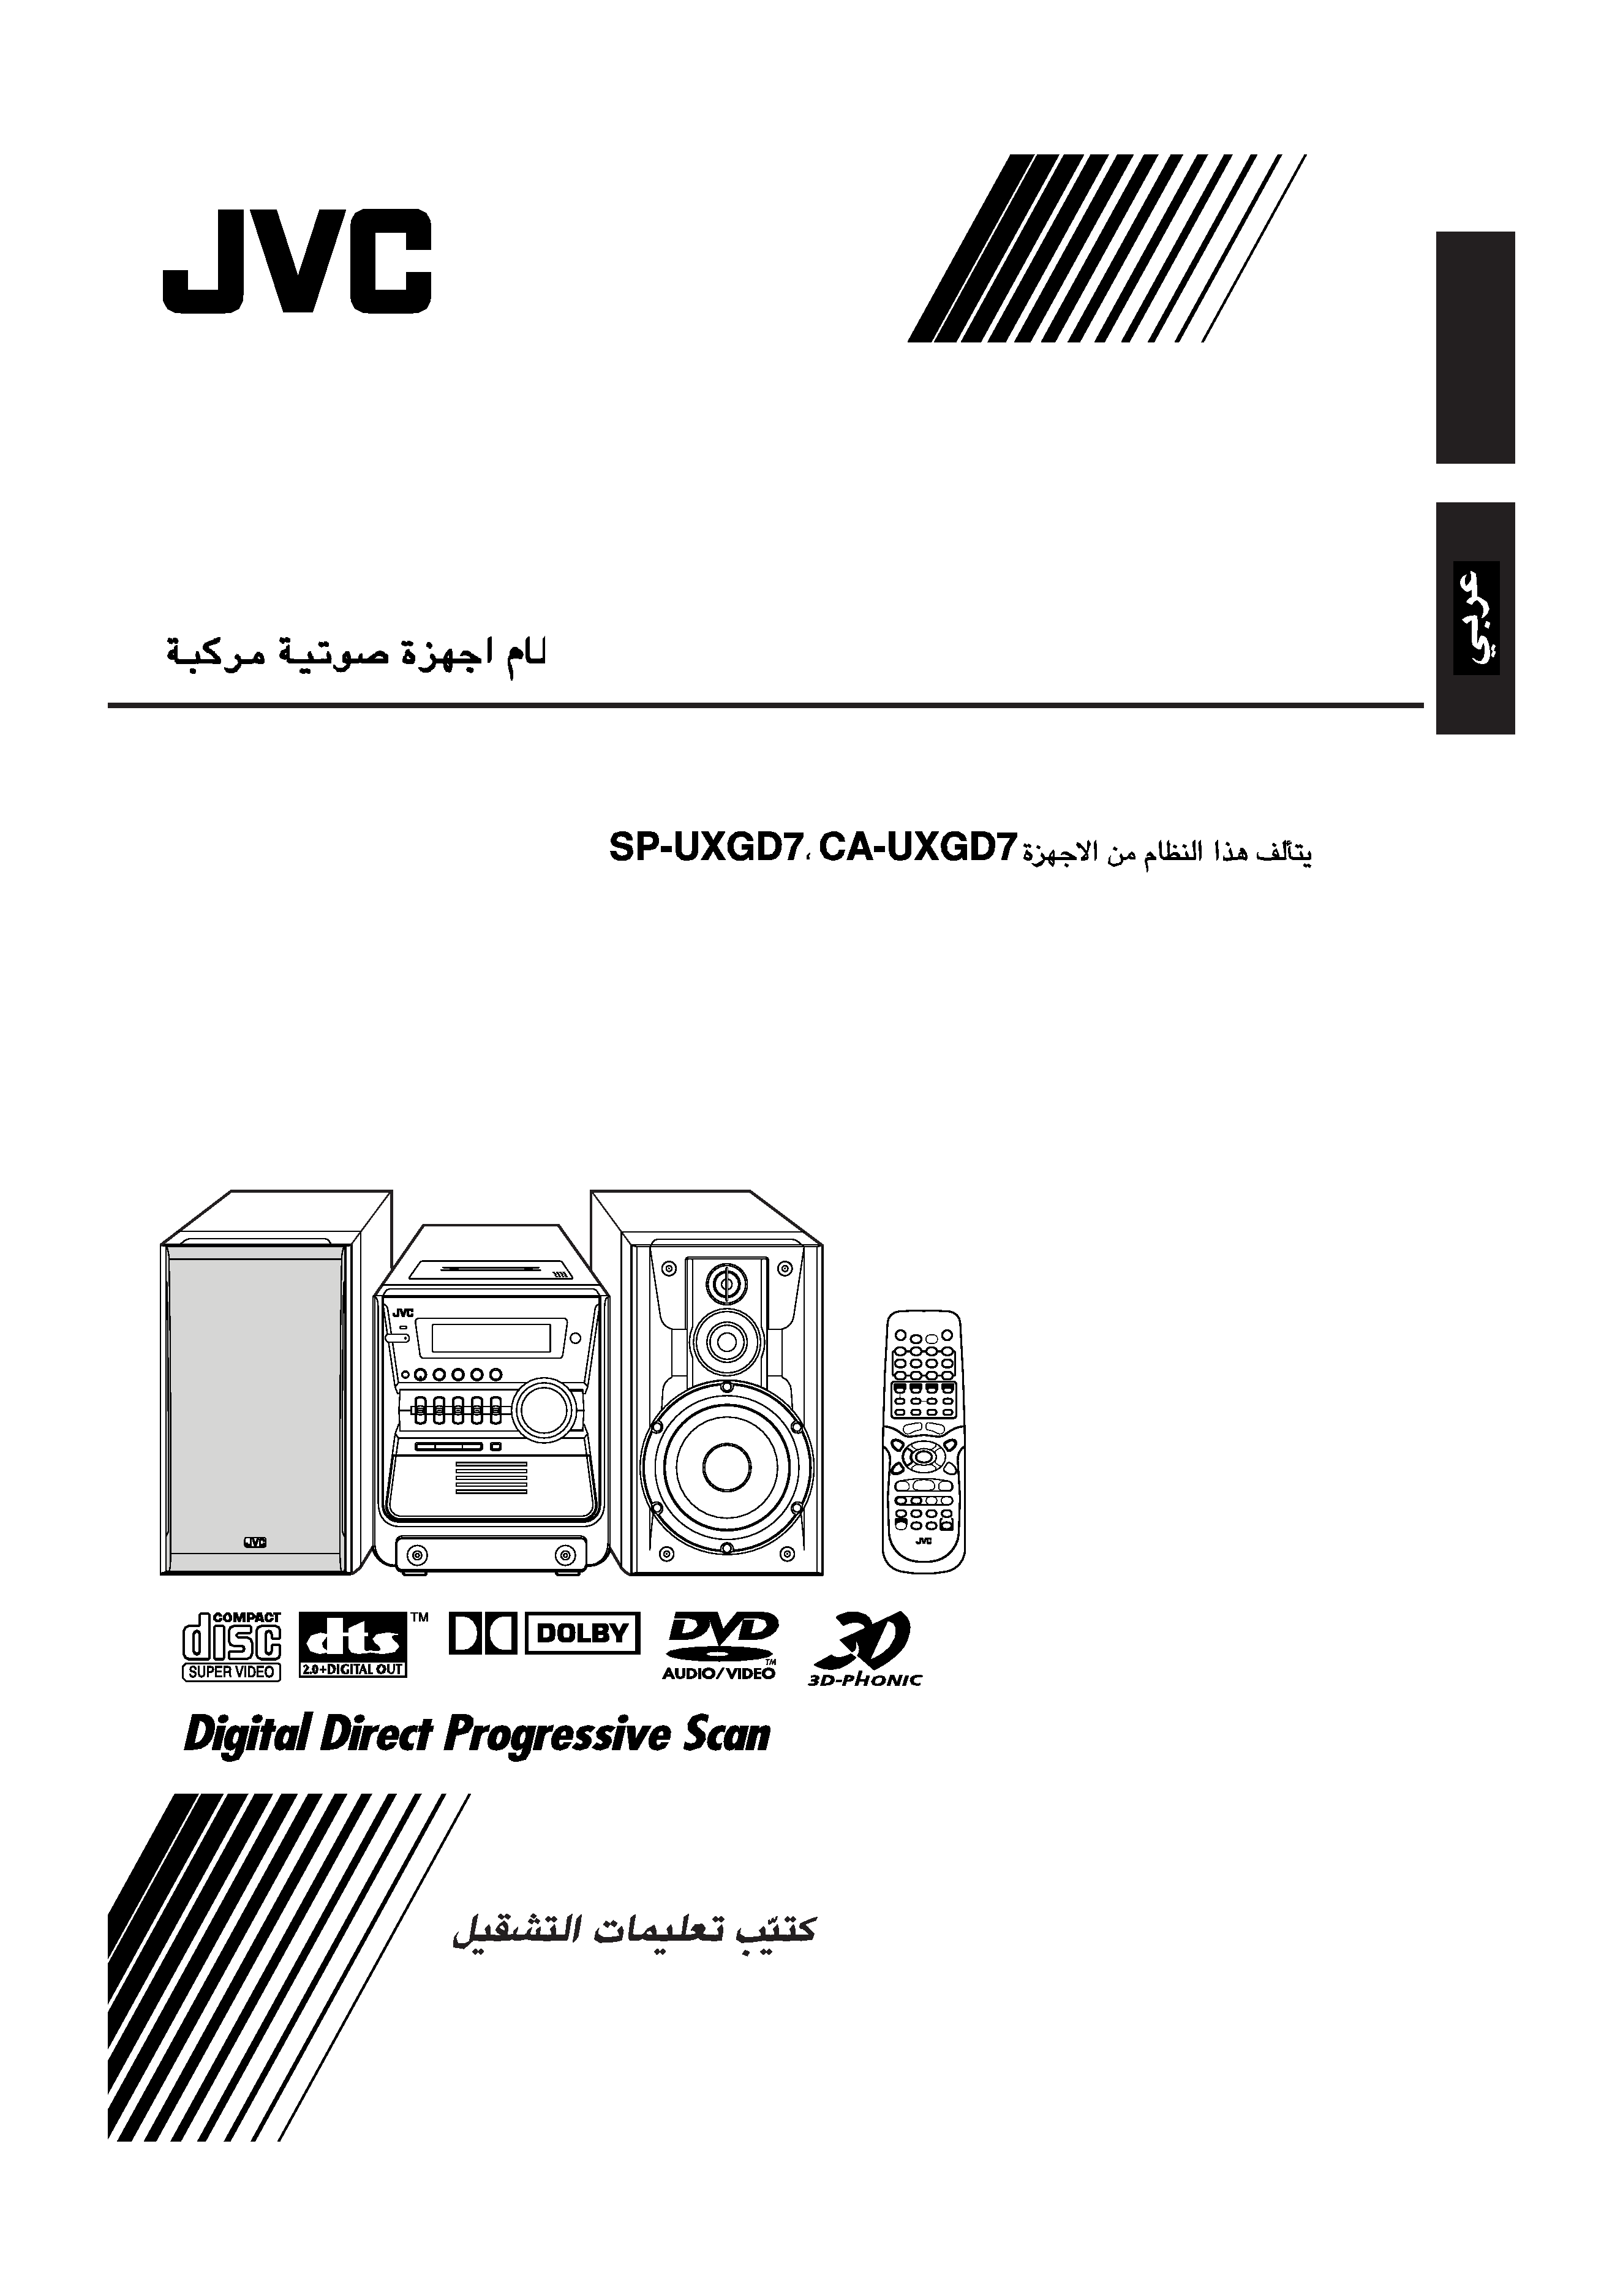 JVC UX-GD7 - Owners Manual Immediate Download